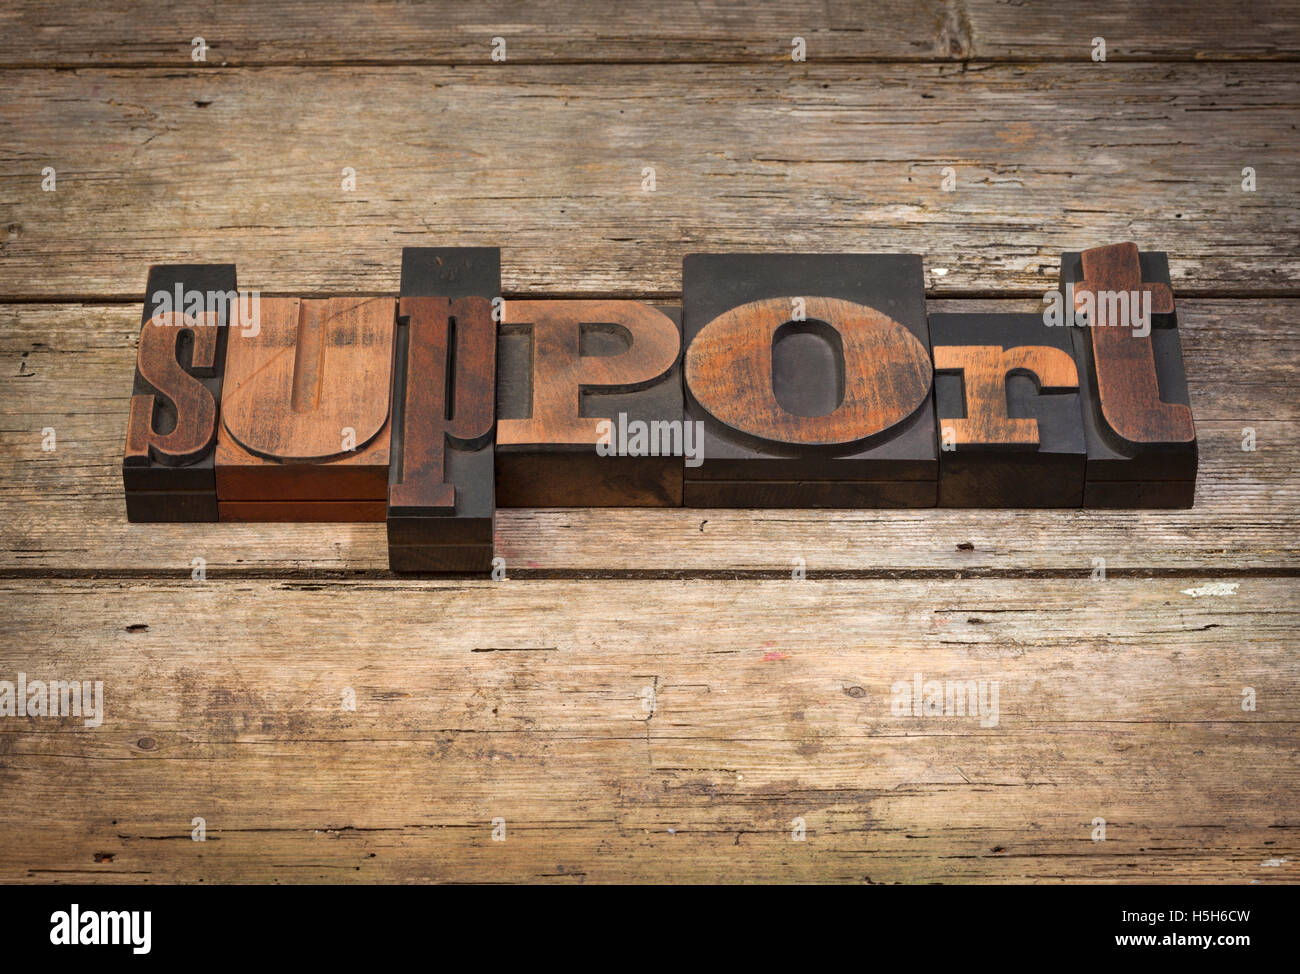 support, word written with vintage letterpress printing blocks on rustic wooden background - Stock Image